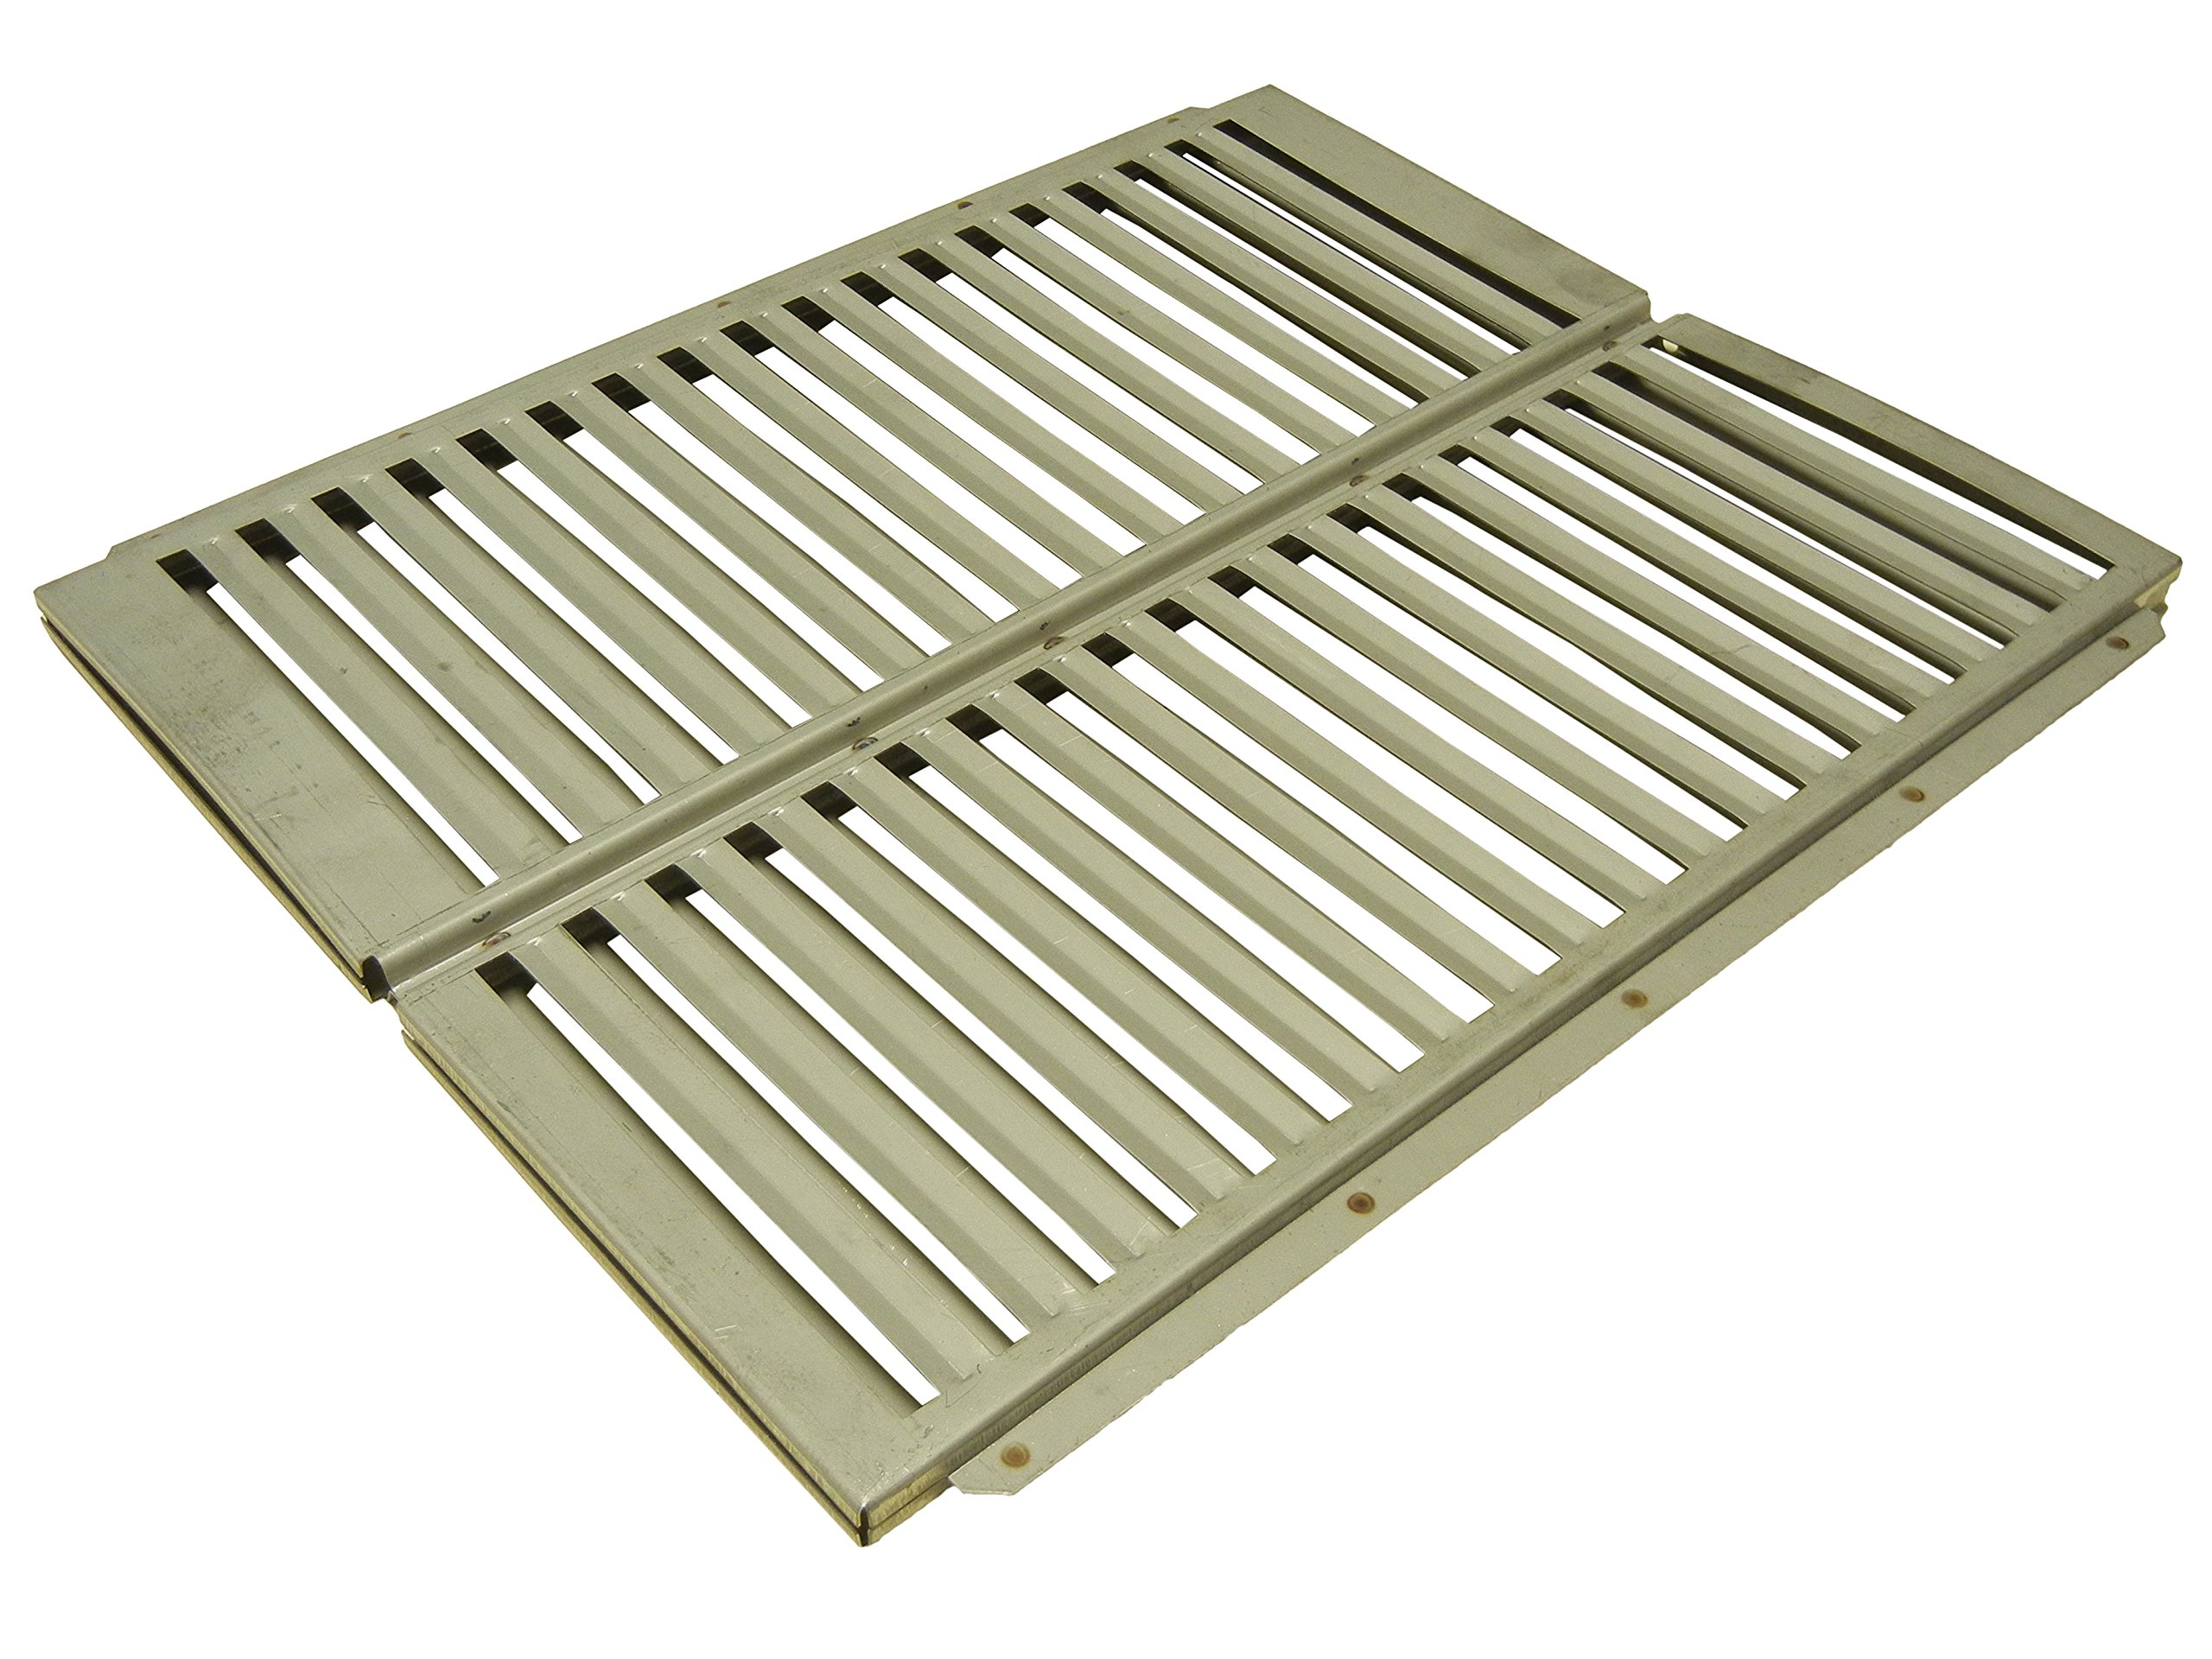 Stainless Steel Heat Plate for Ducane Grills by Music City Metals